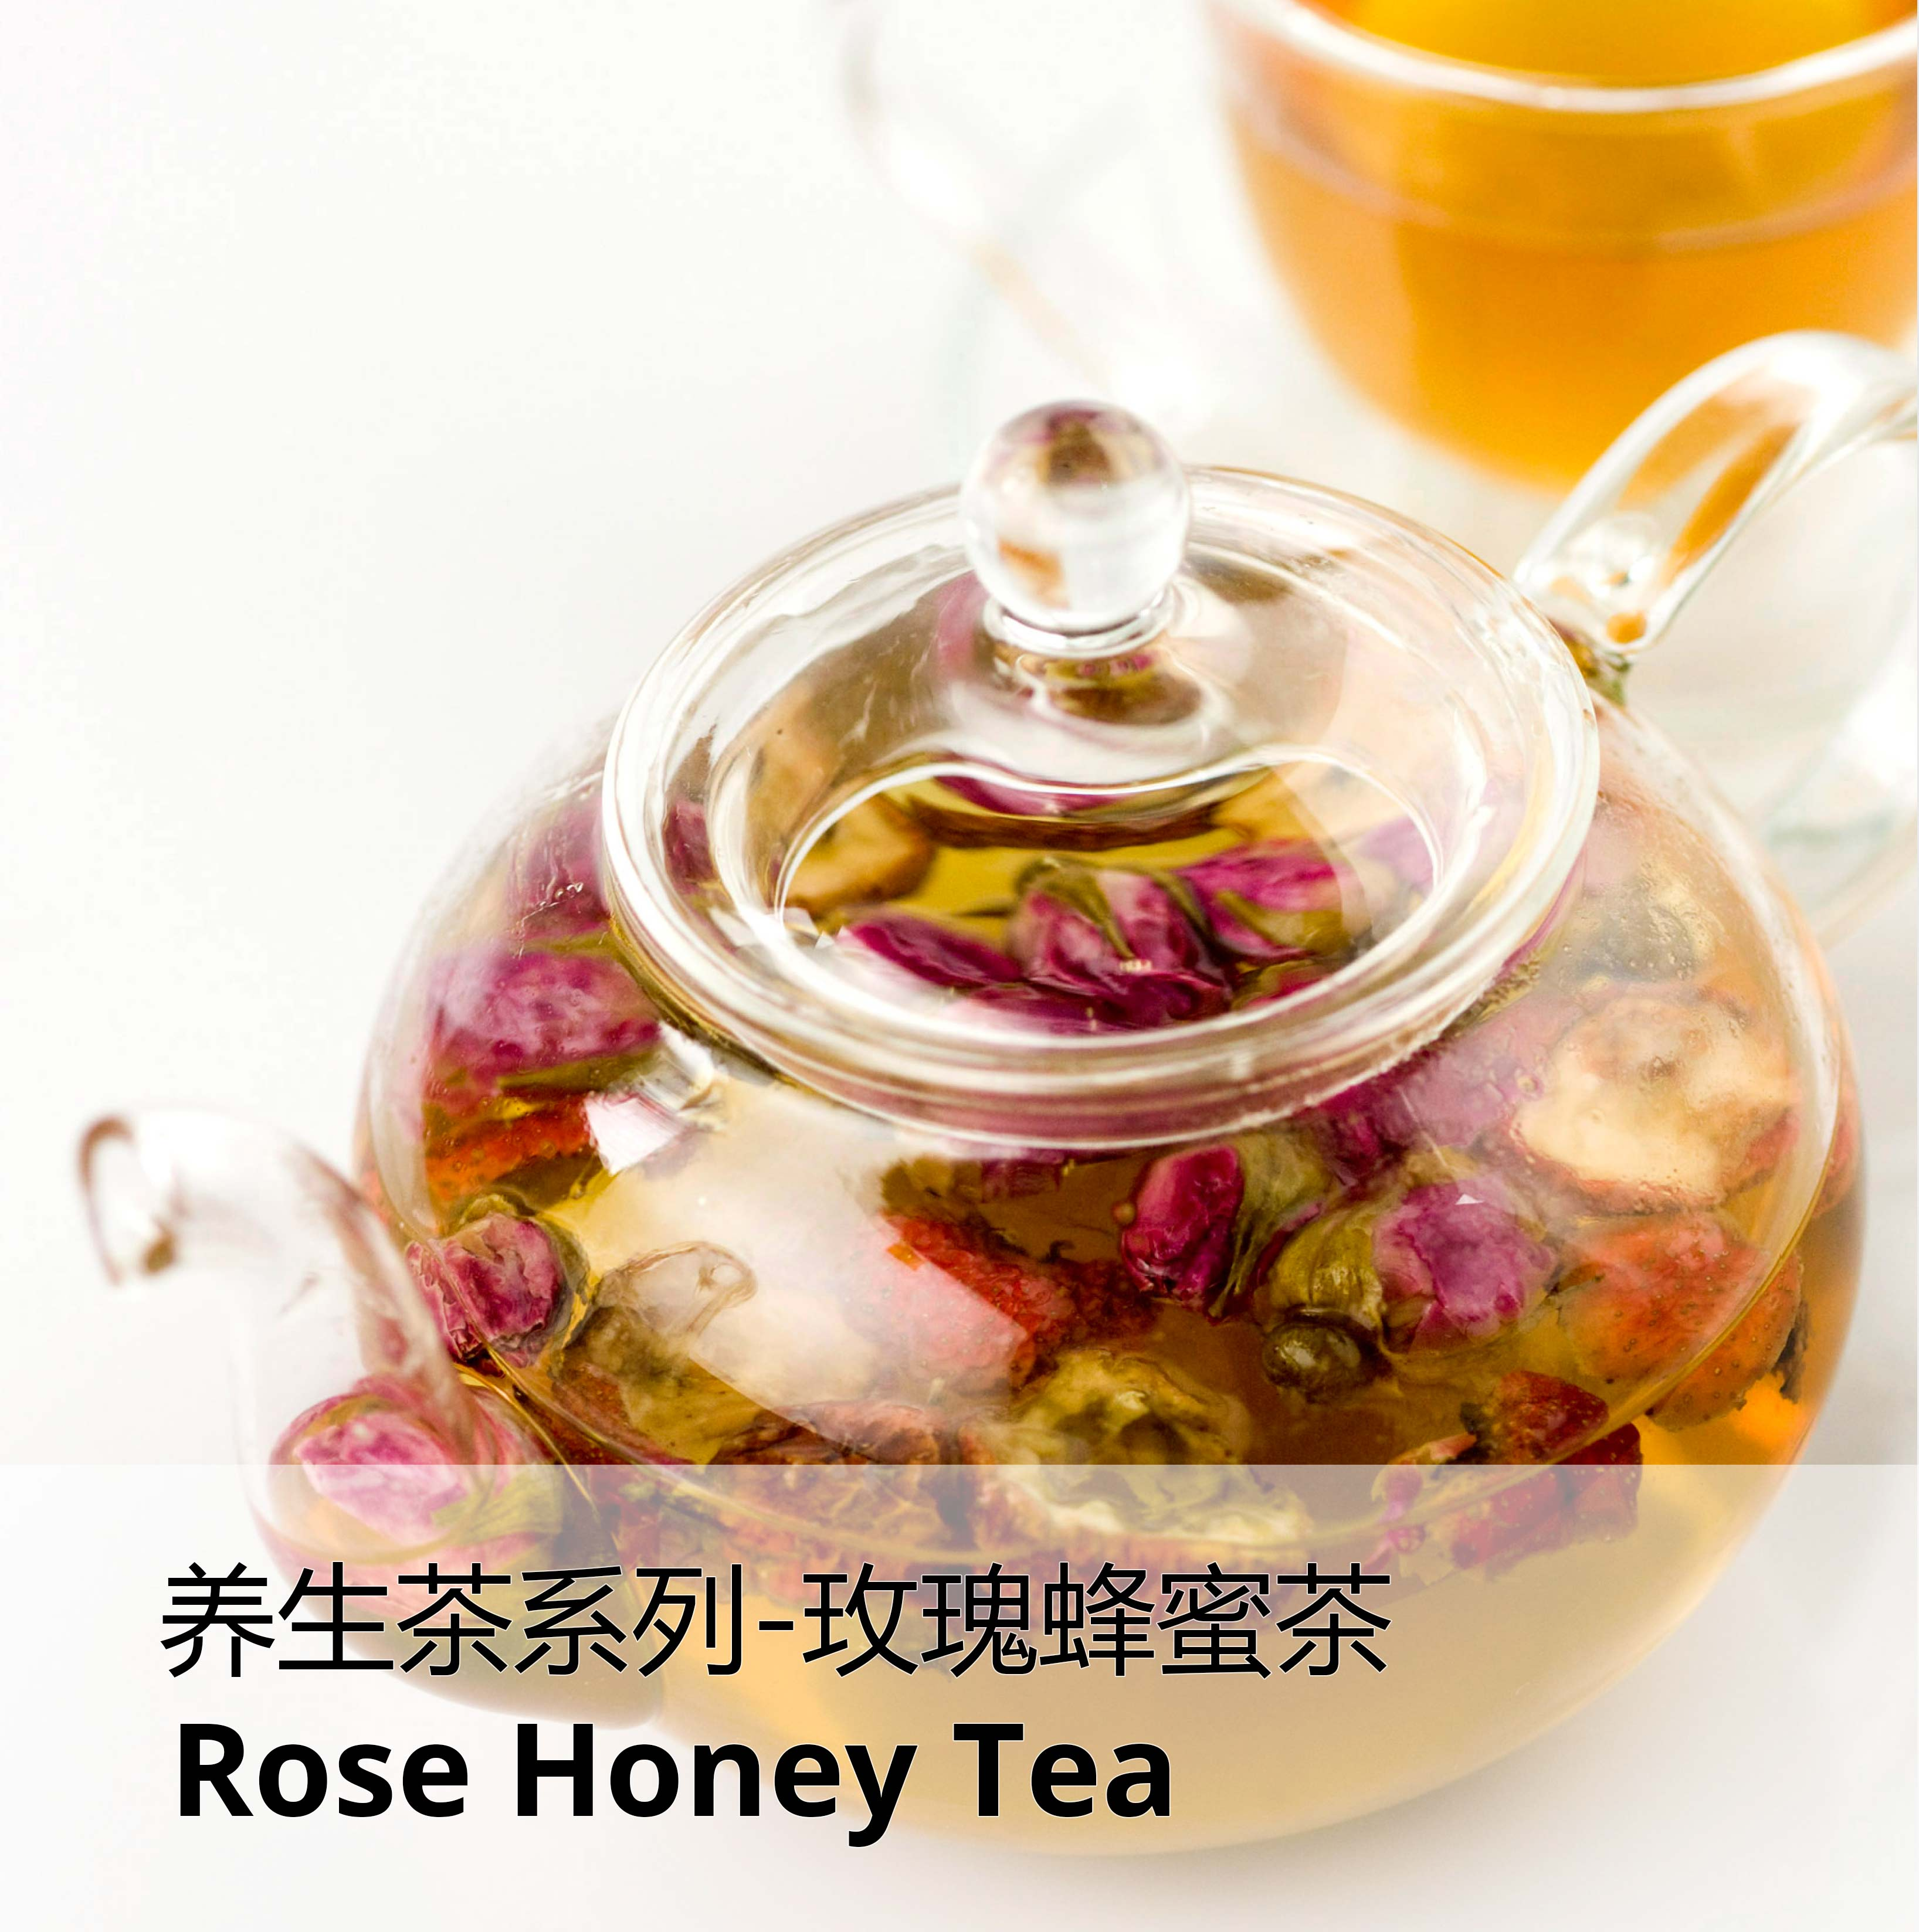 Rose honey tea at TEA VALLEY